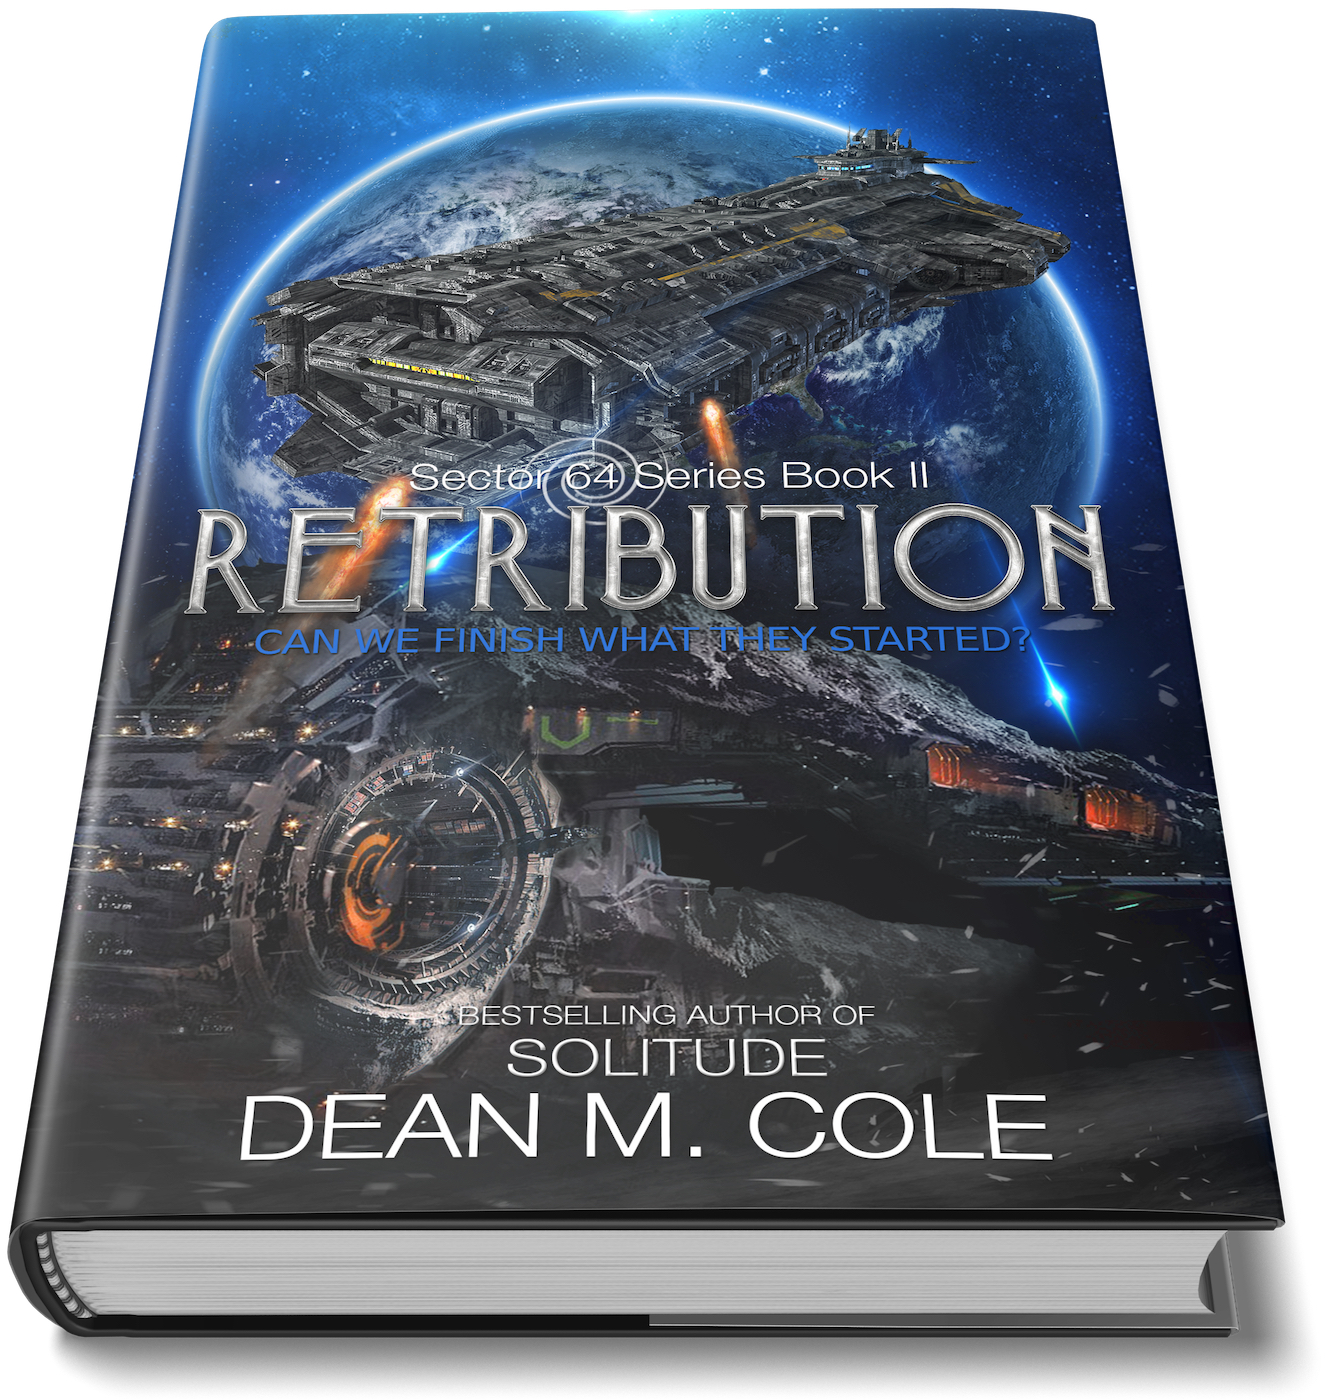 Signed Retribution Hardcover Book